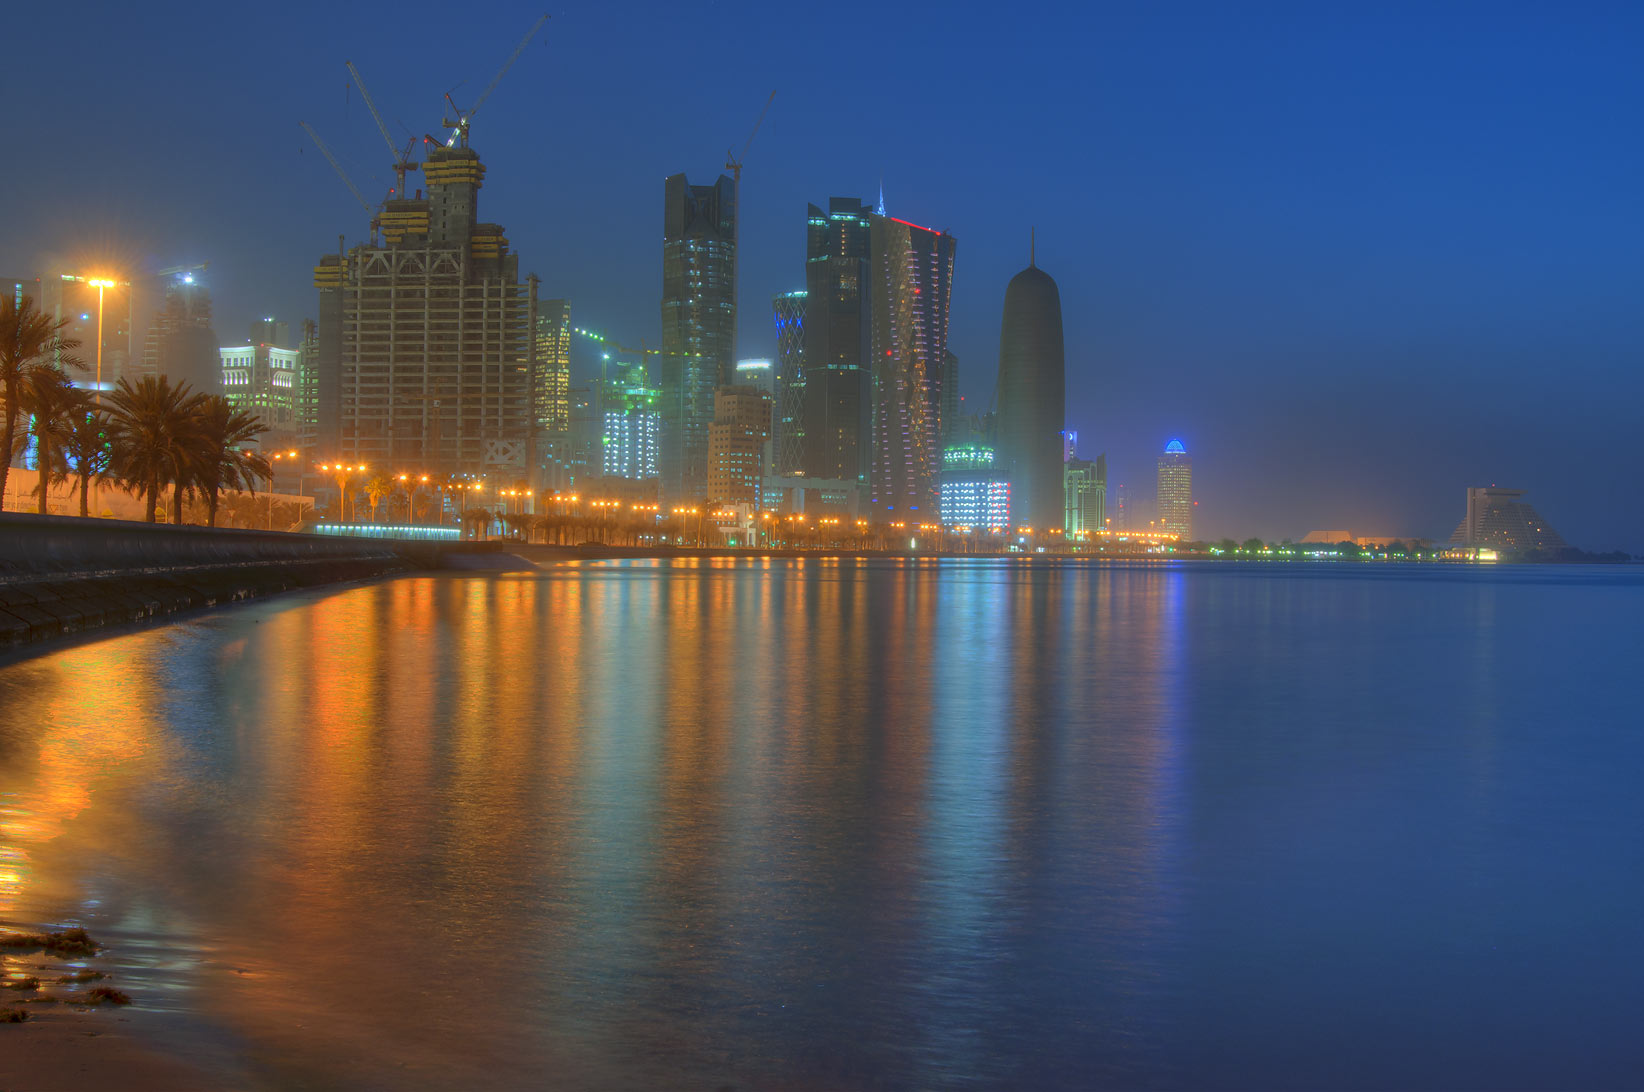 West Bay, view from Corniche (seafront promenade). Doha, Qatar